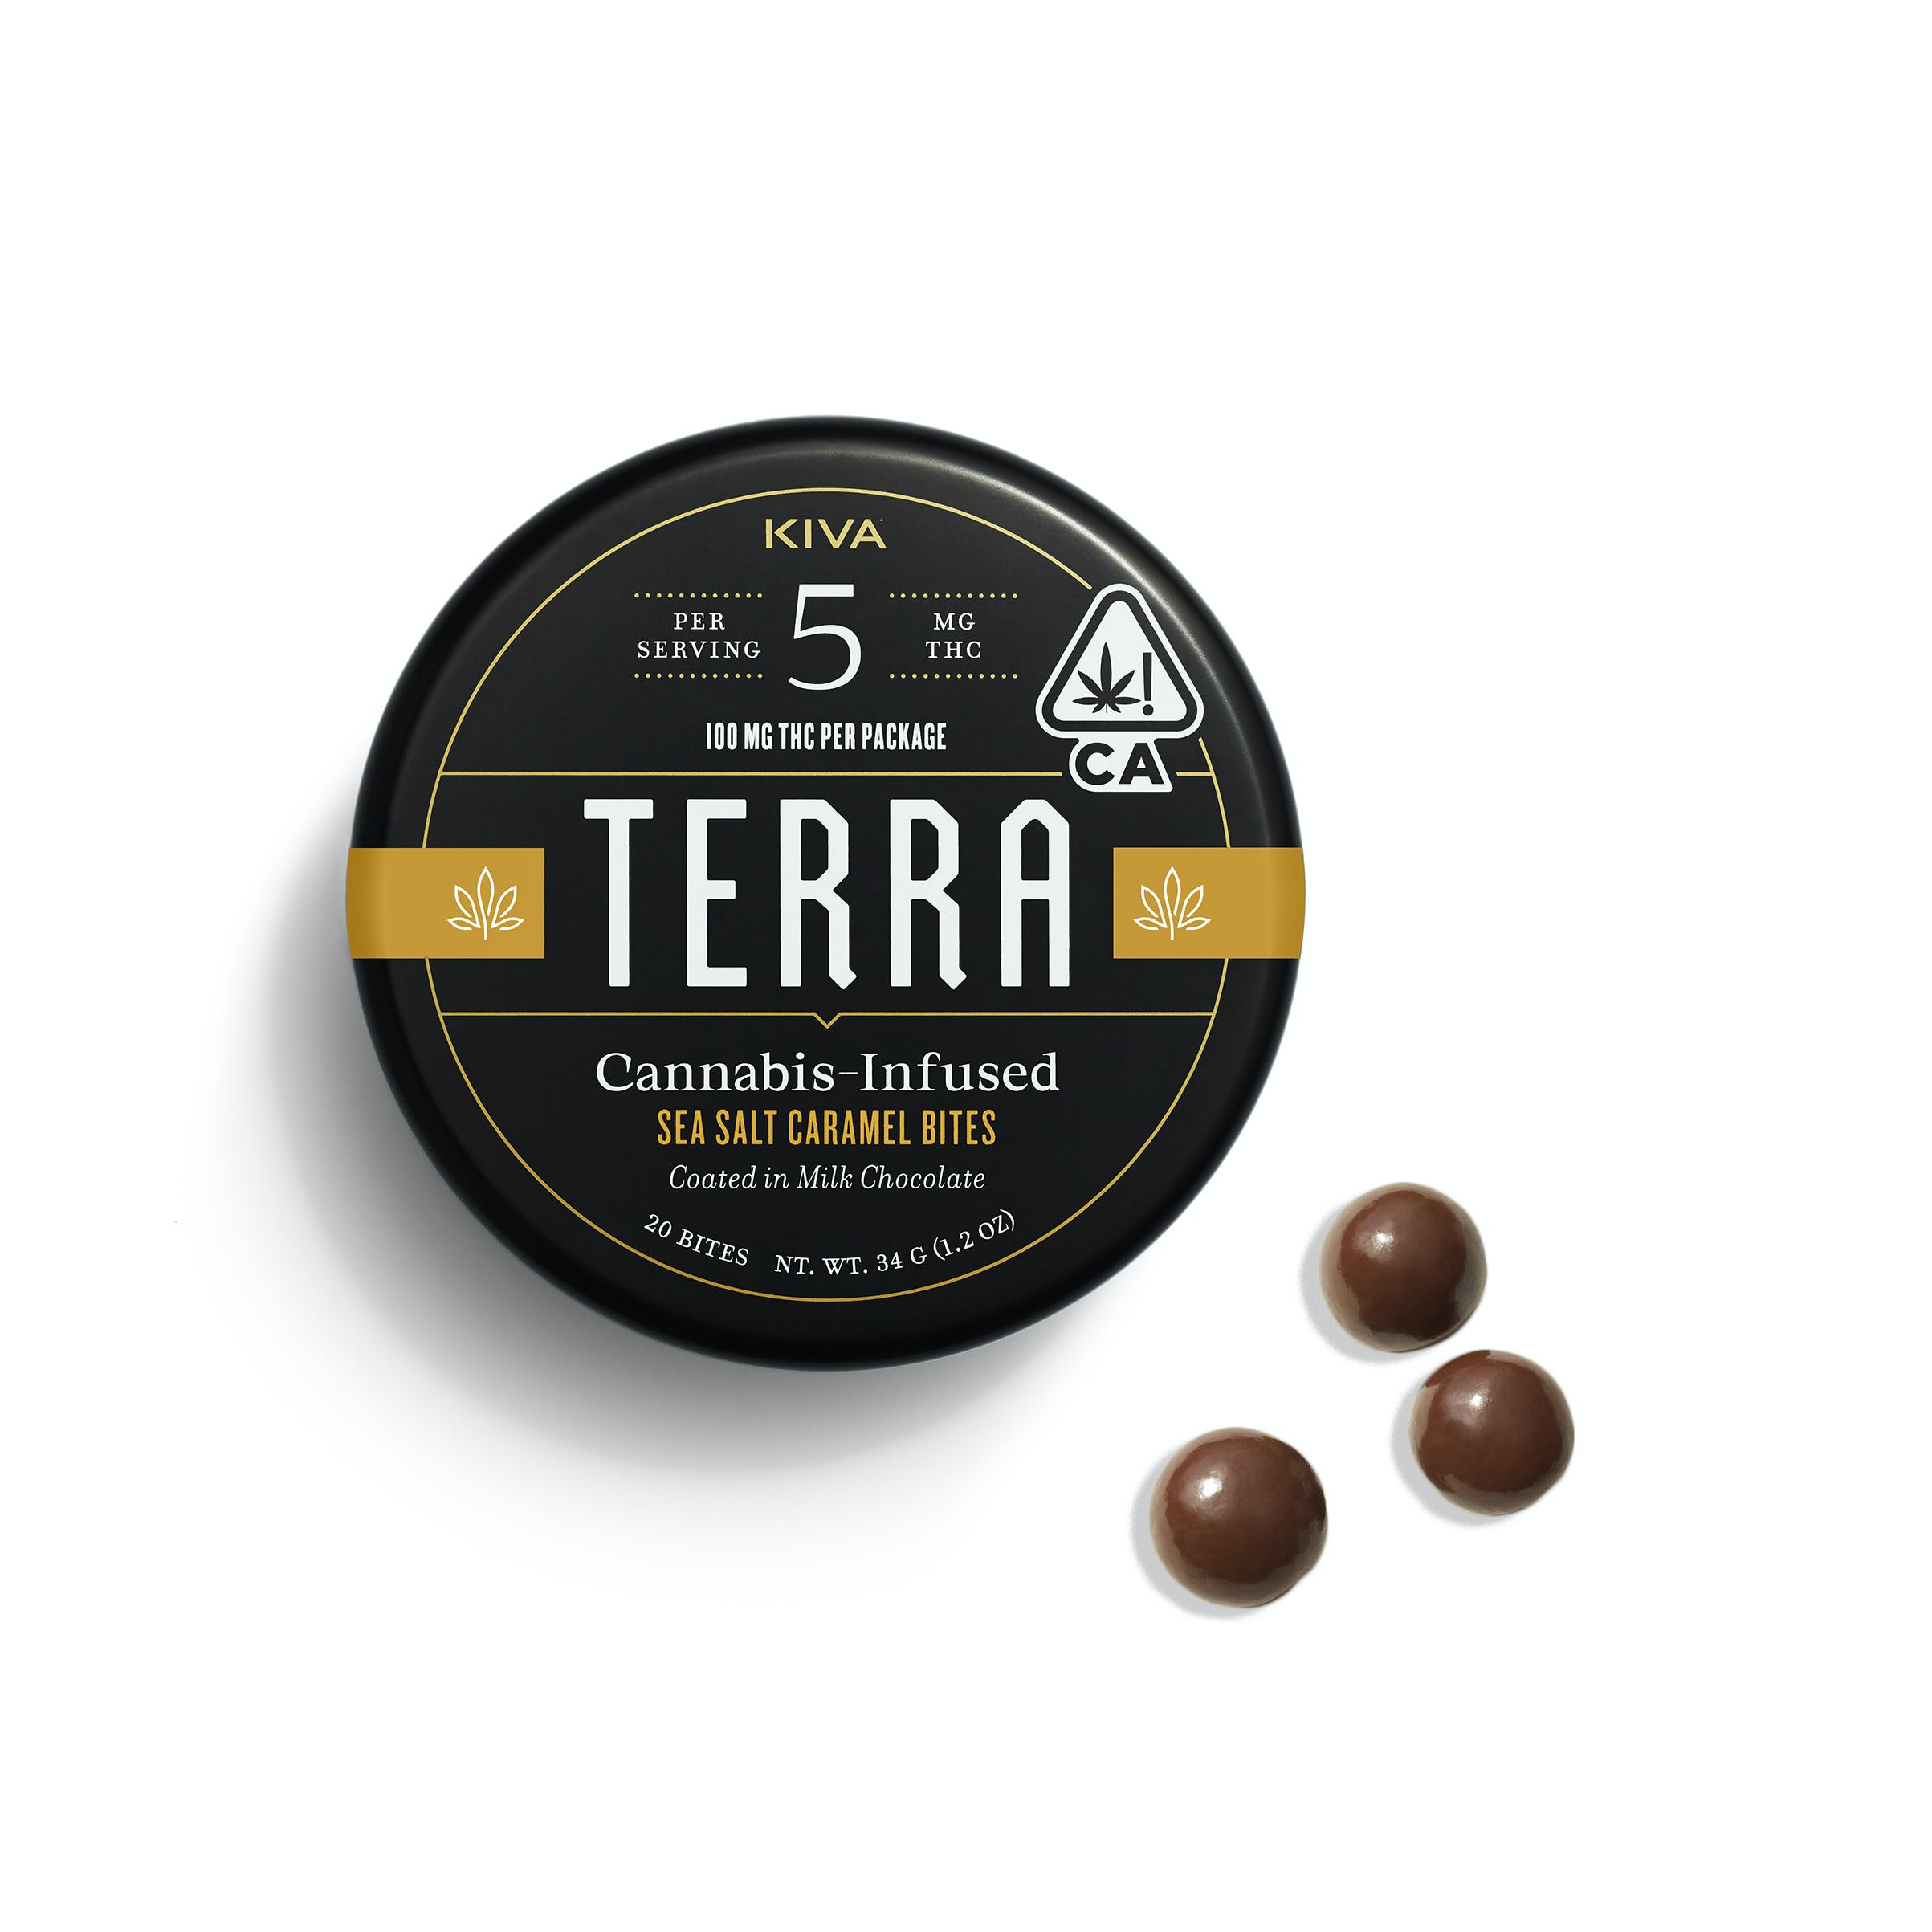 Terra Sea Salt Caramel Bites - 100mg